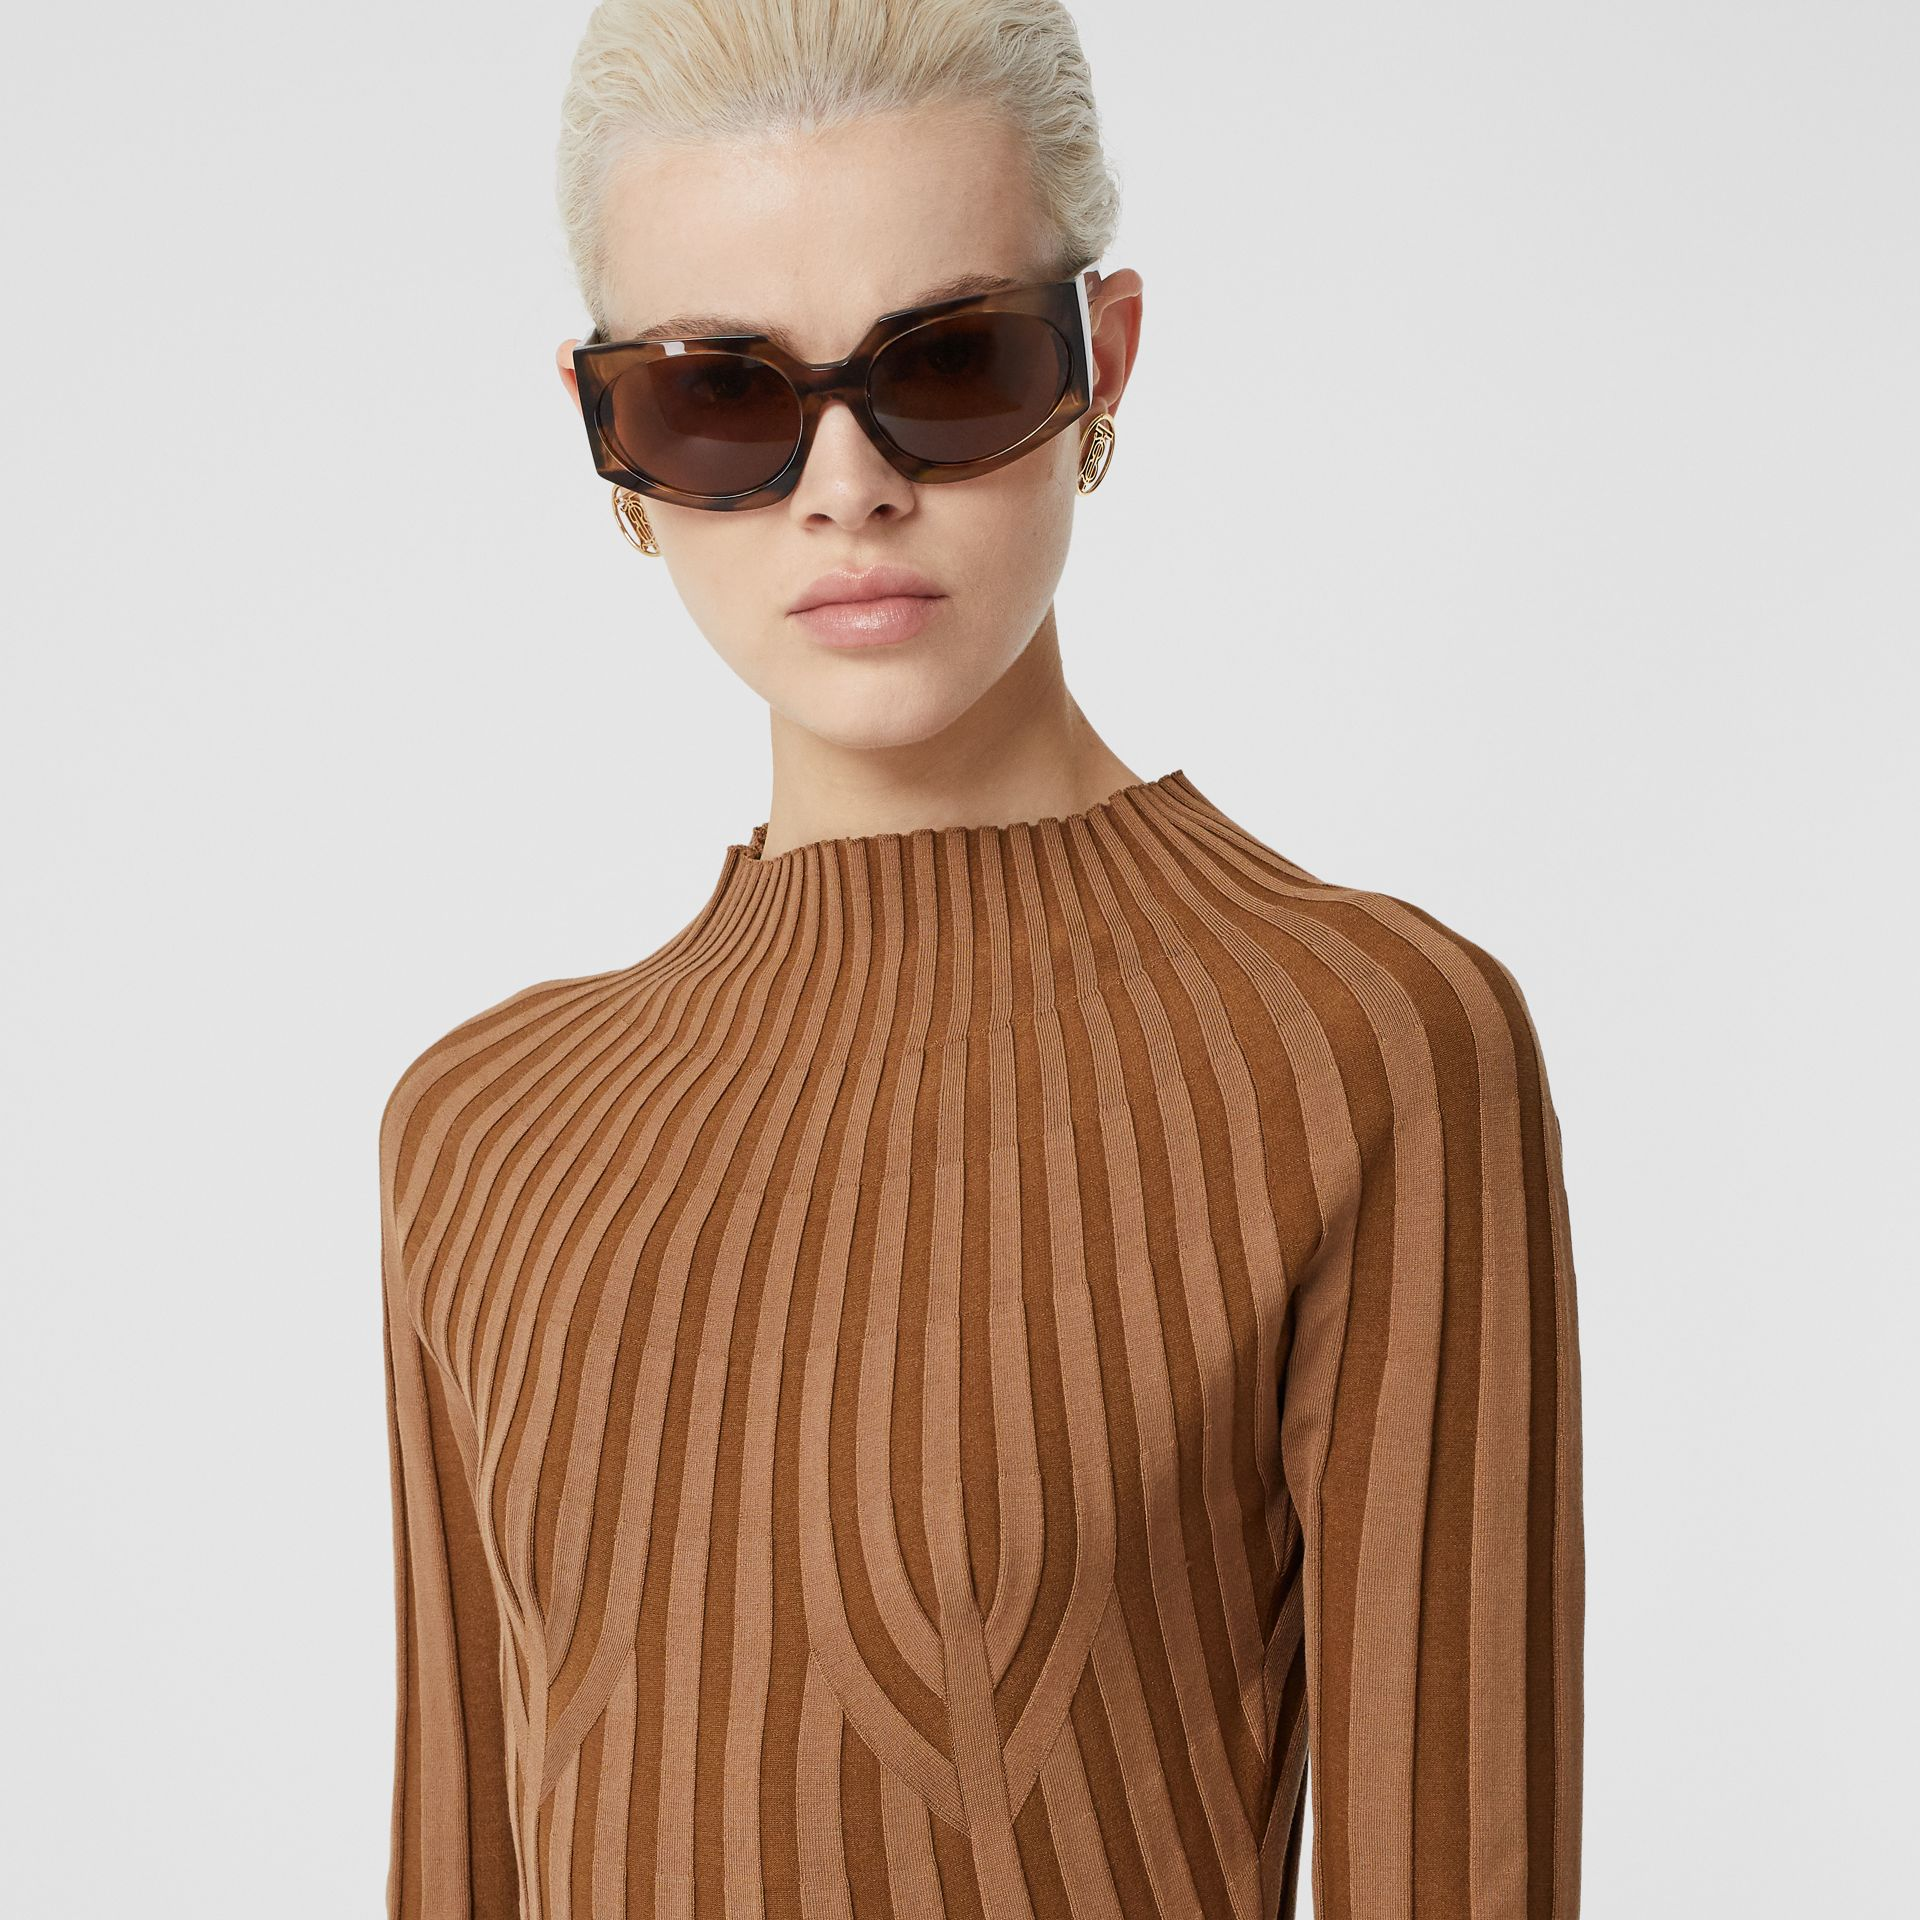 Long-sleeve Rib Knit Stretch Silk Blend Dress in Truffle - Women | Burberry - gallery image 5